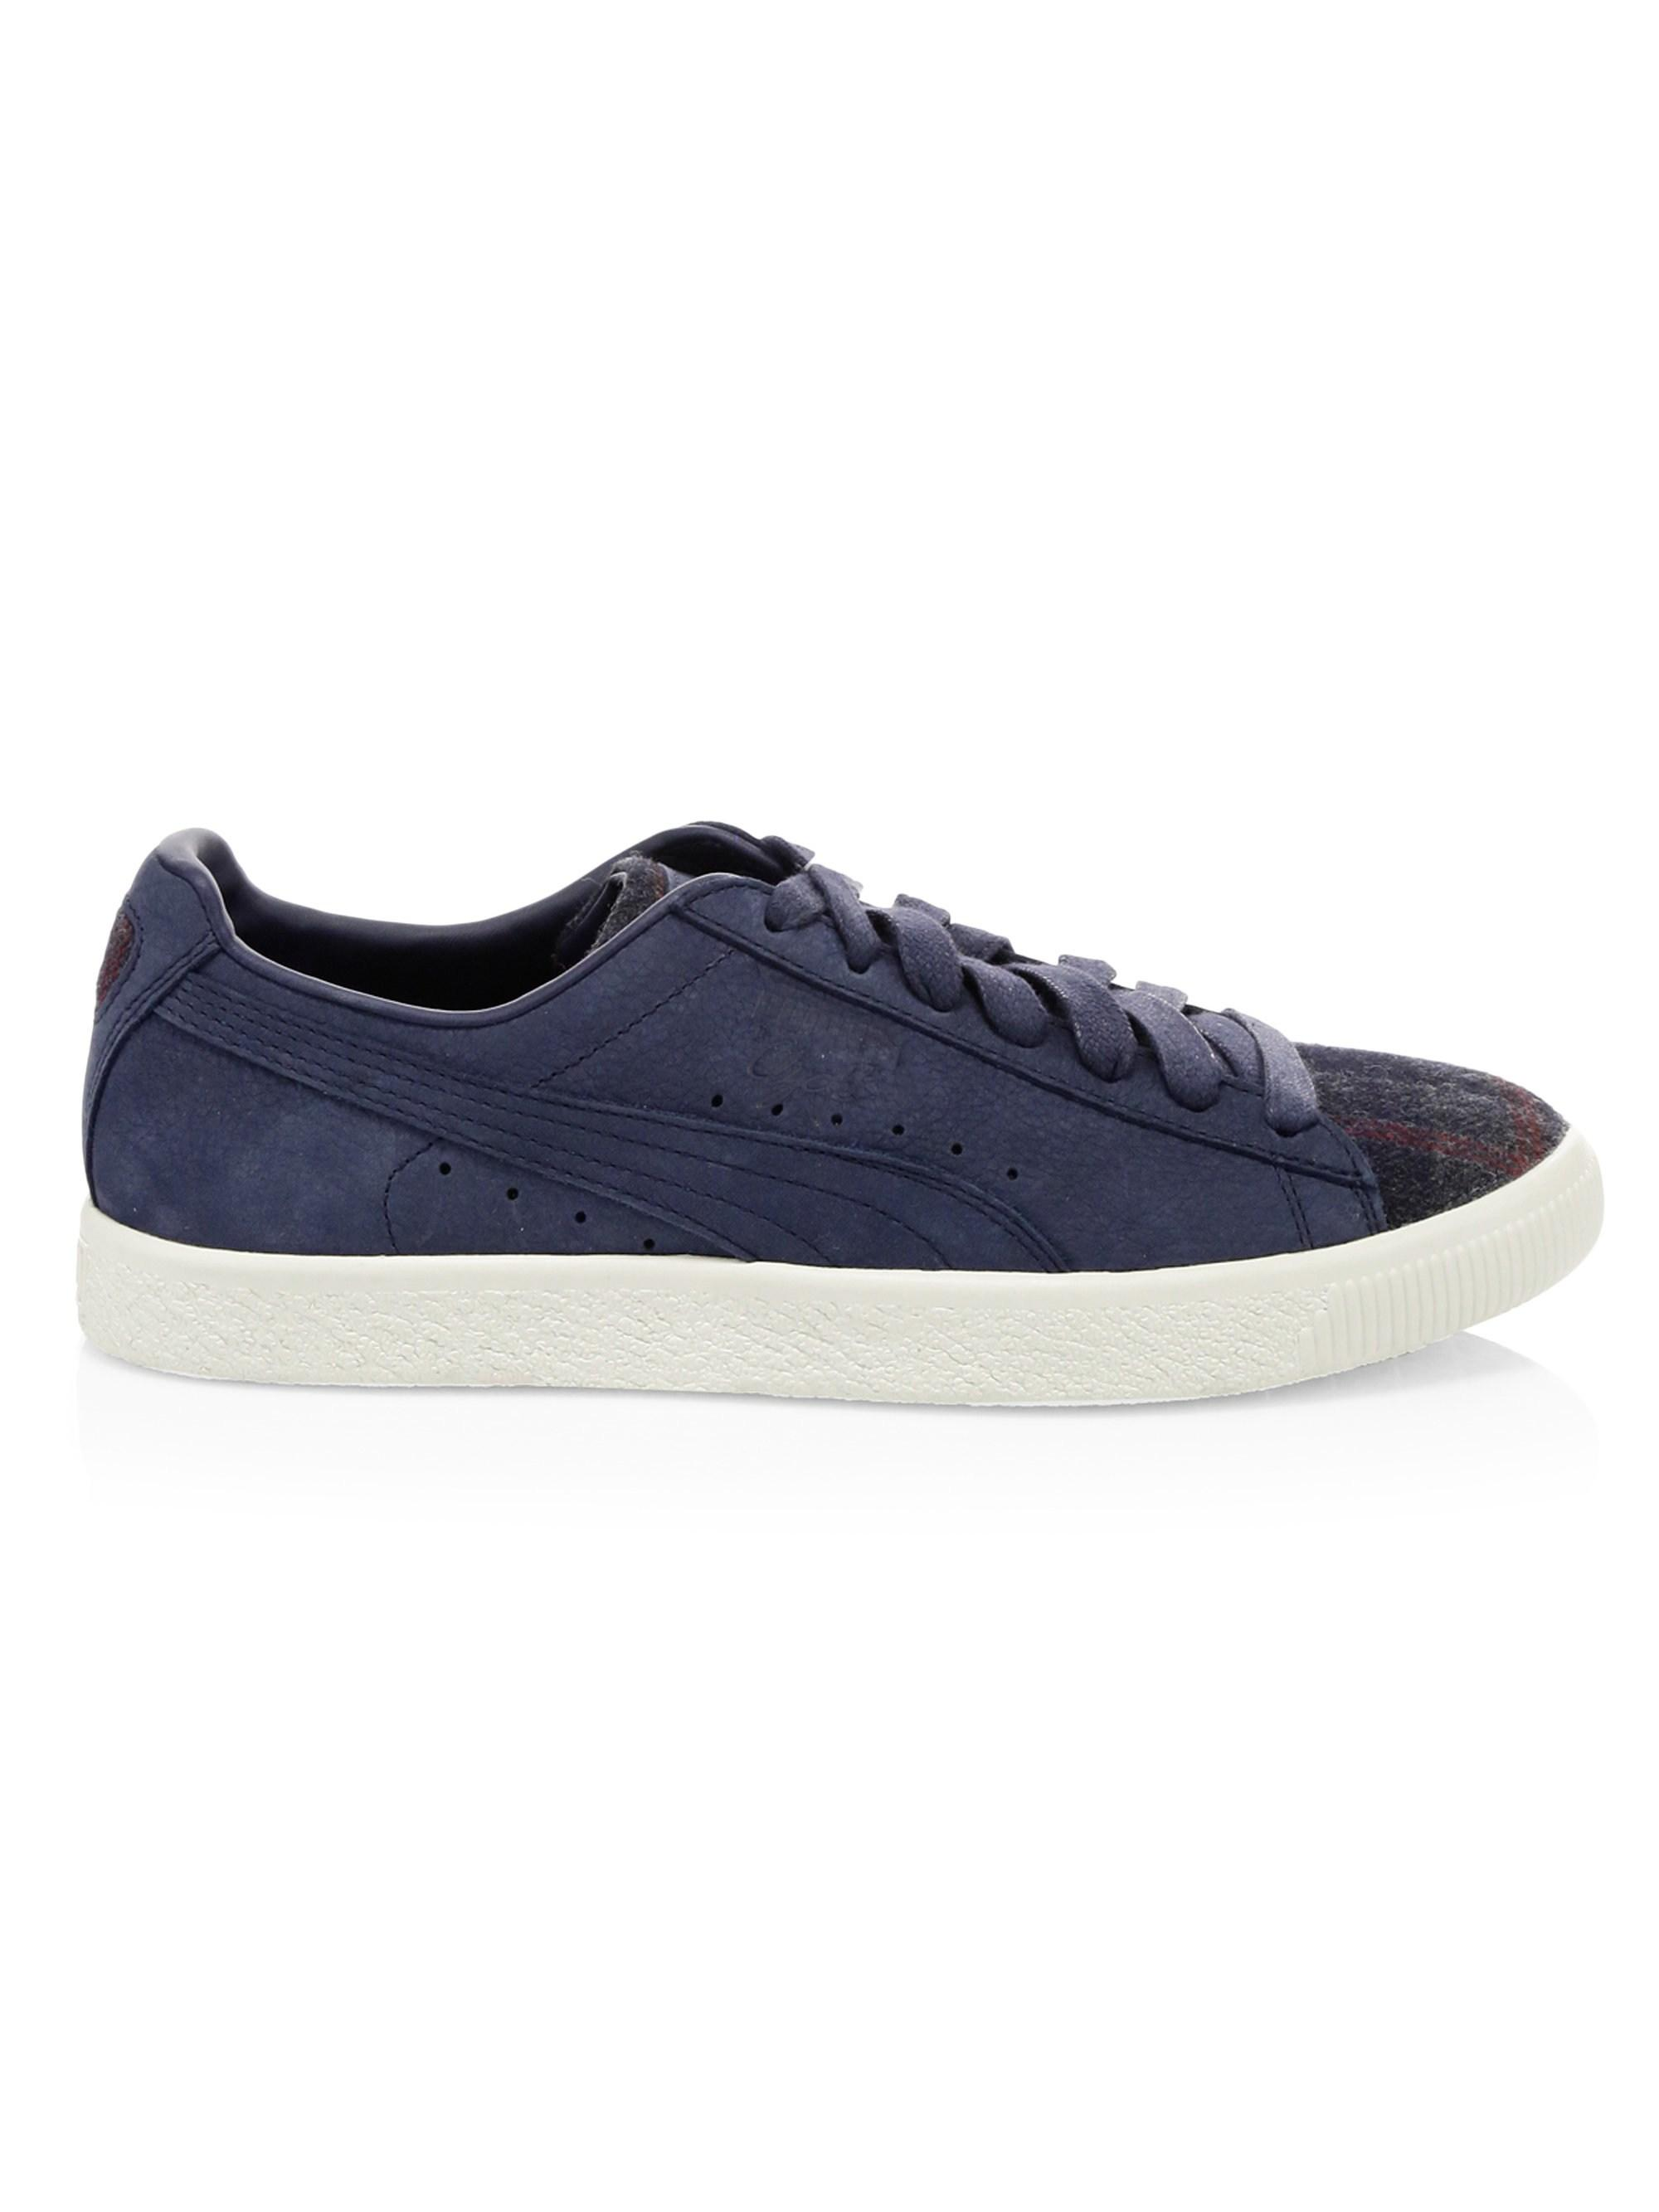 5ca3a0606989 Lyst - PUMA Clyde Suede Plaid Sneakers in Blue for Men